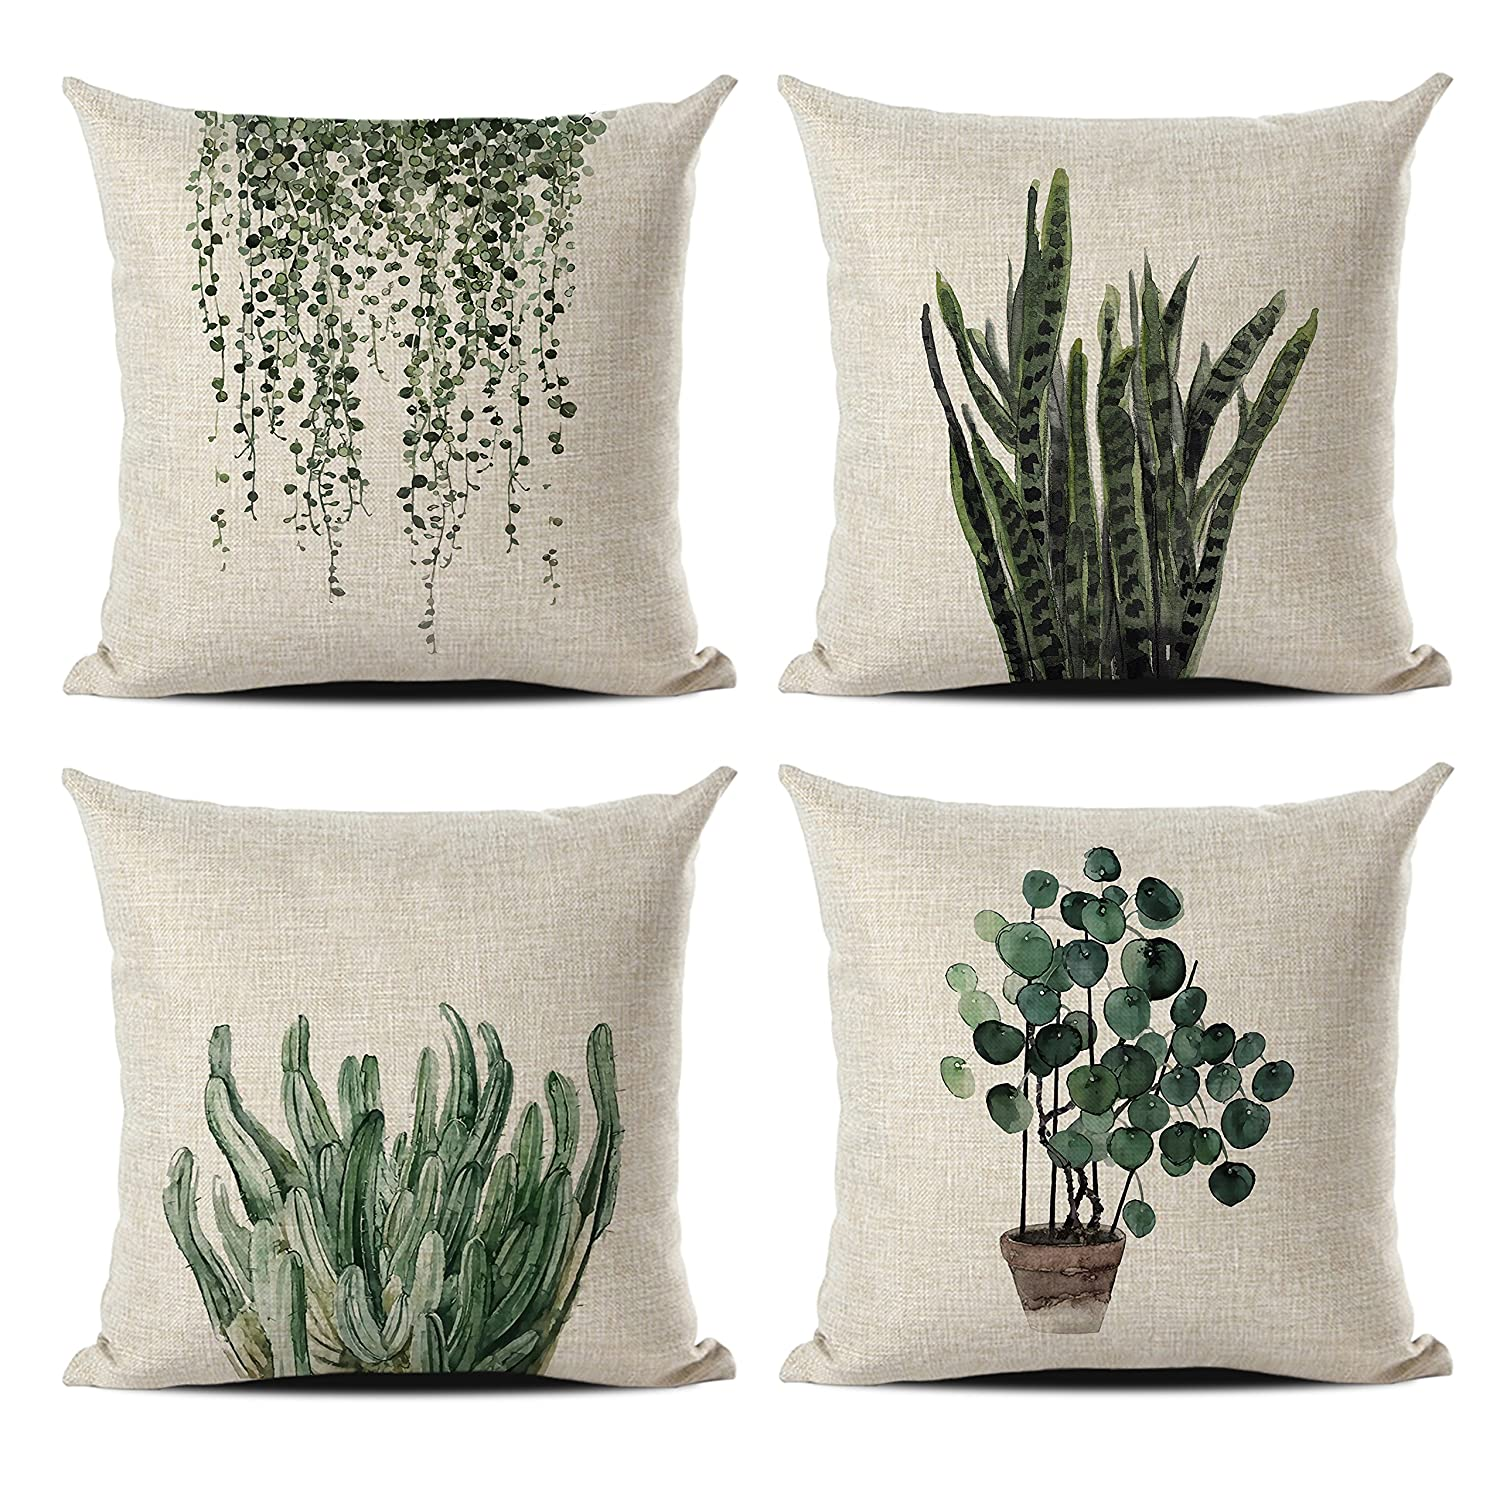 Set Of 4 Green Plant Throw Pillow Covers Decorative Cotton Line Outdoor Cushion Cover Sofa Home Pillow Covers 18x18